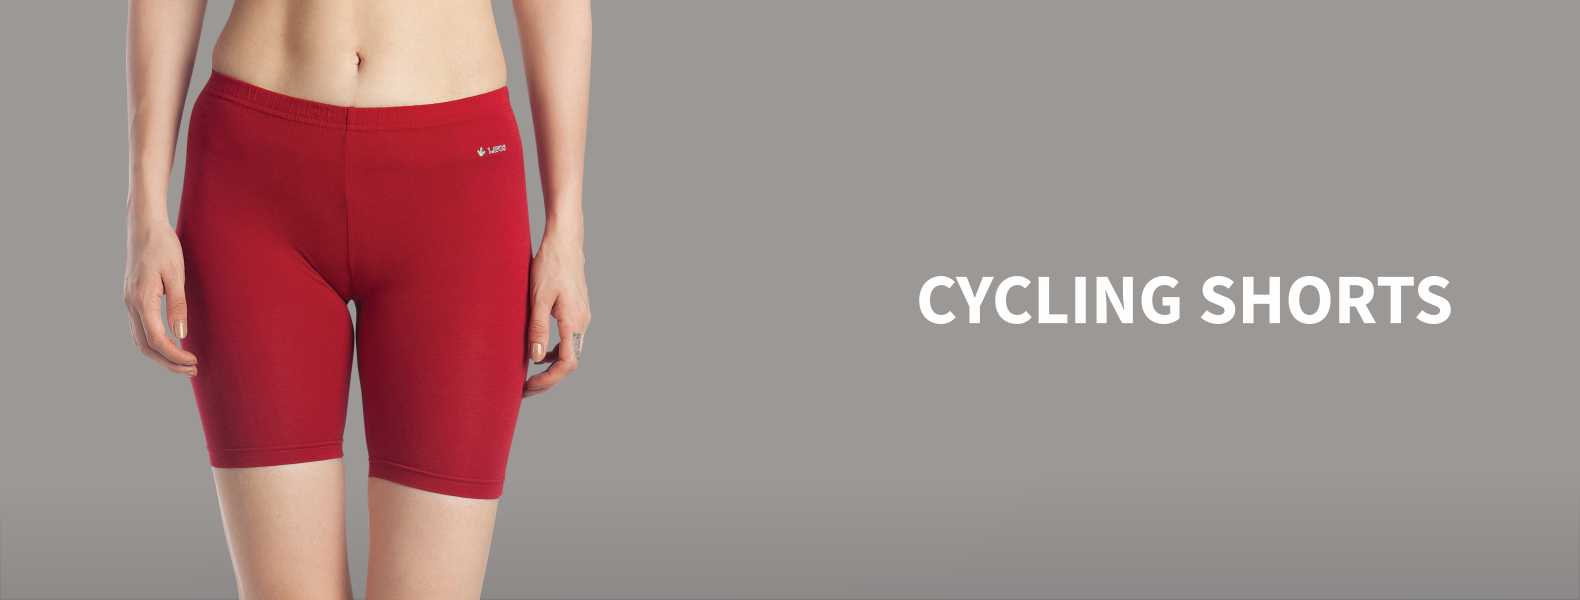 Cycling shorts